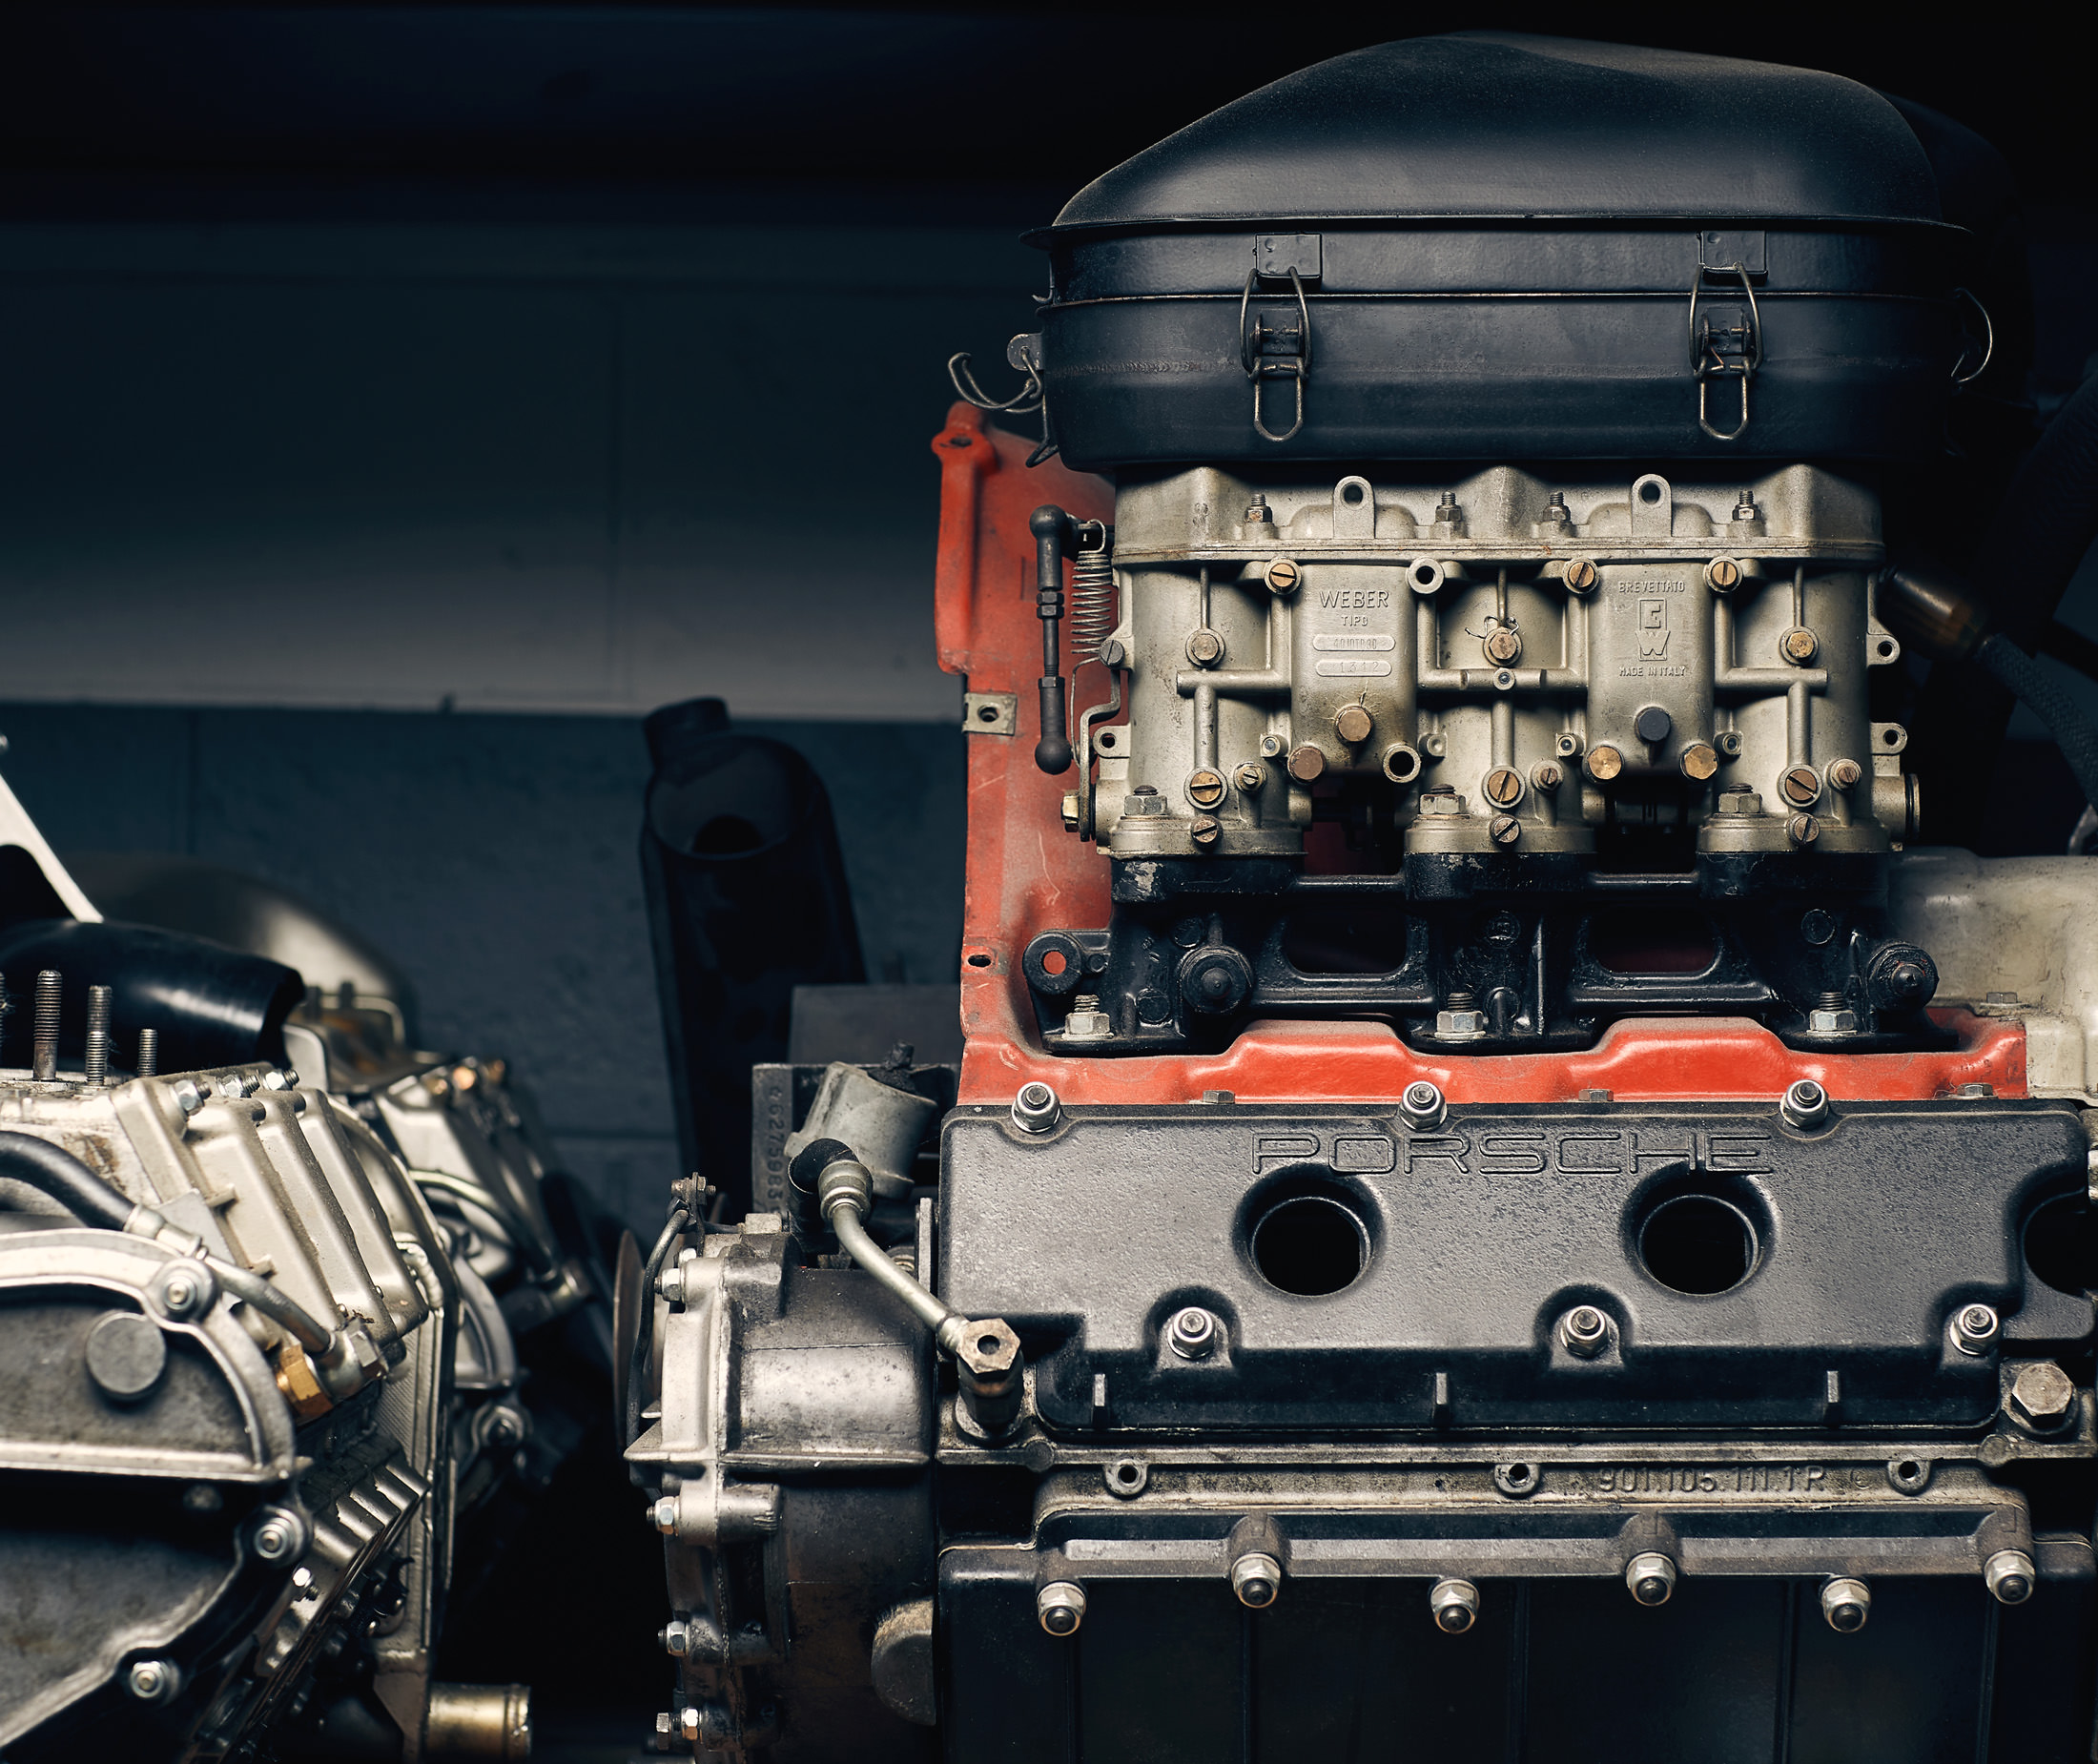 Flatsix engines are six-cylinder air-cooled engines that have been in production since 1963.